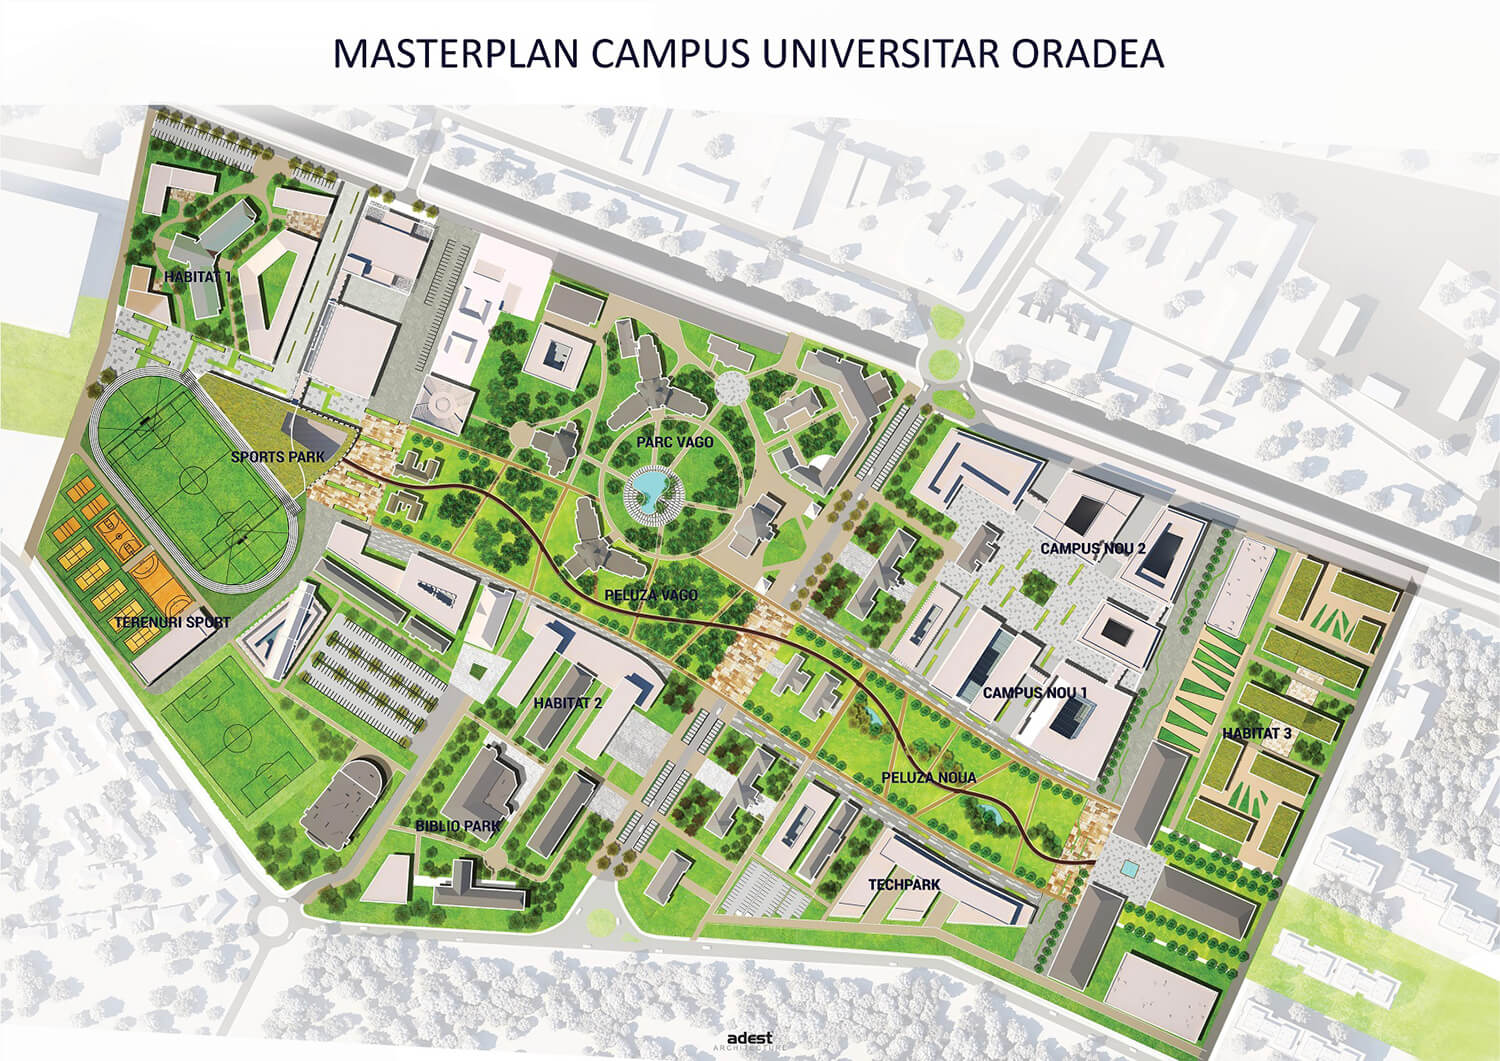 MASTERPLAN CAMPUS UNIVERSITAR ORADEA PLAN A0 2018.05.22